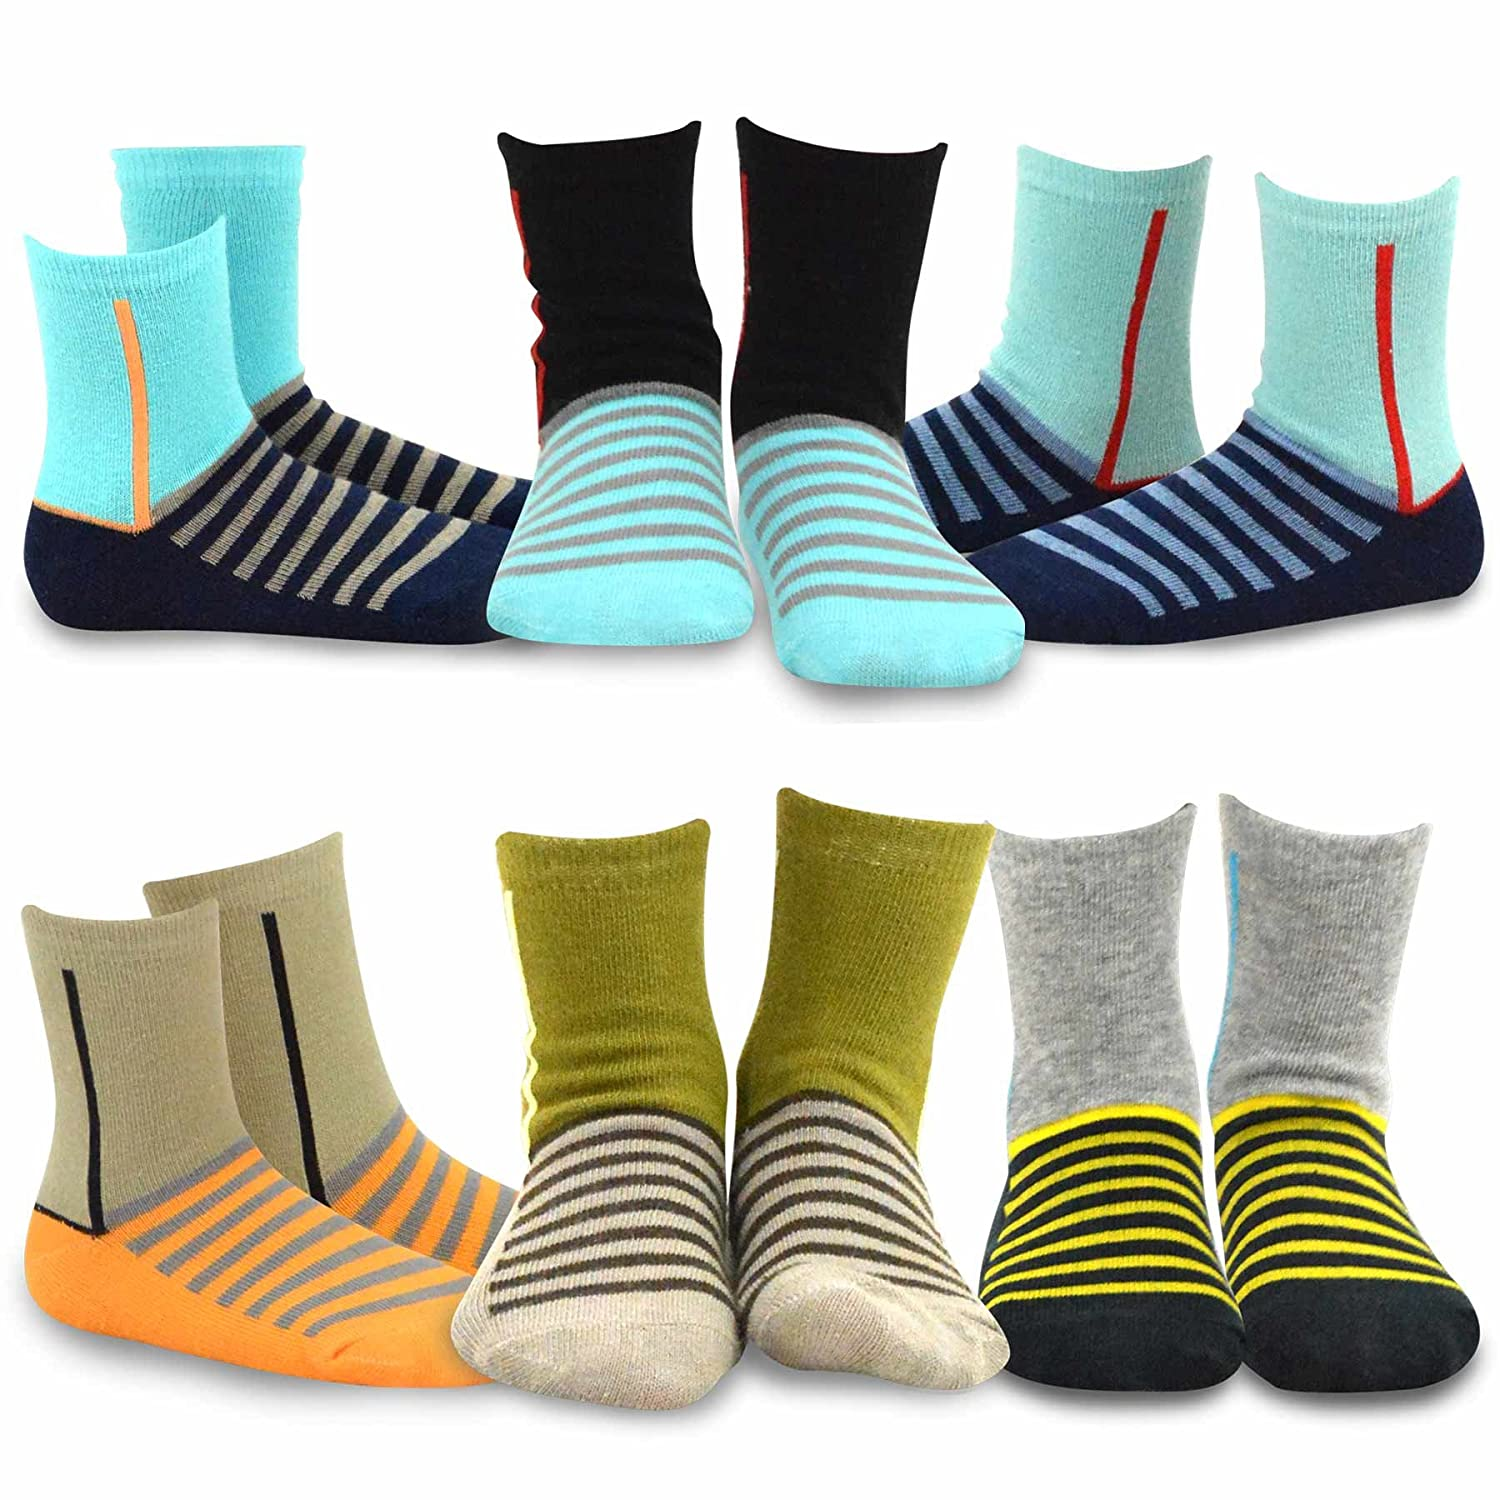 TeeHee (Naartjie) Kids Boys Fashion Fun Cotton Crew Socks 6 Pair Pack